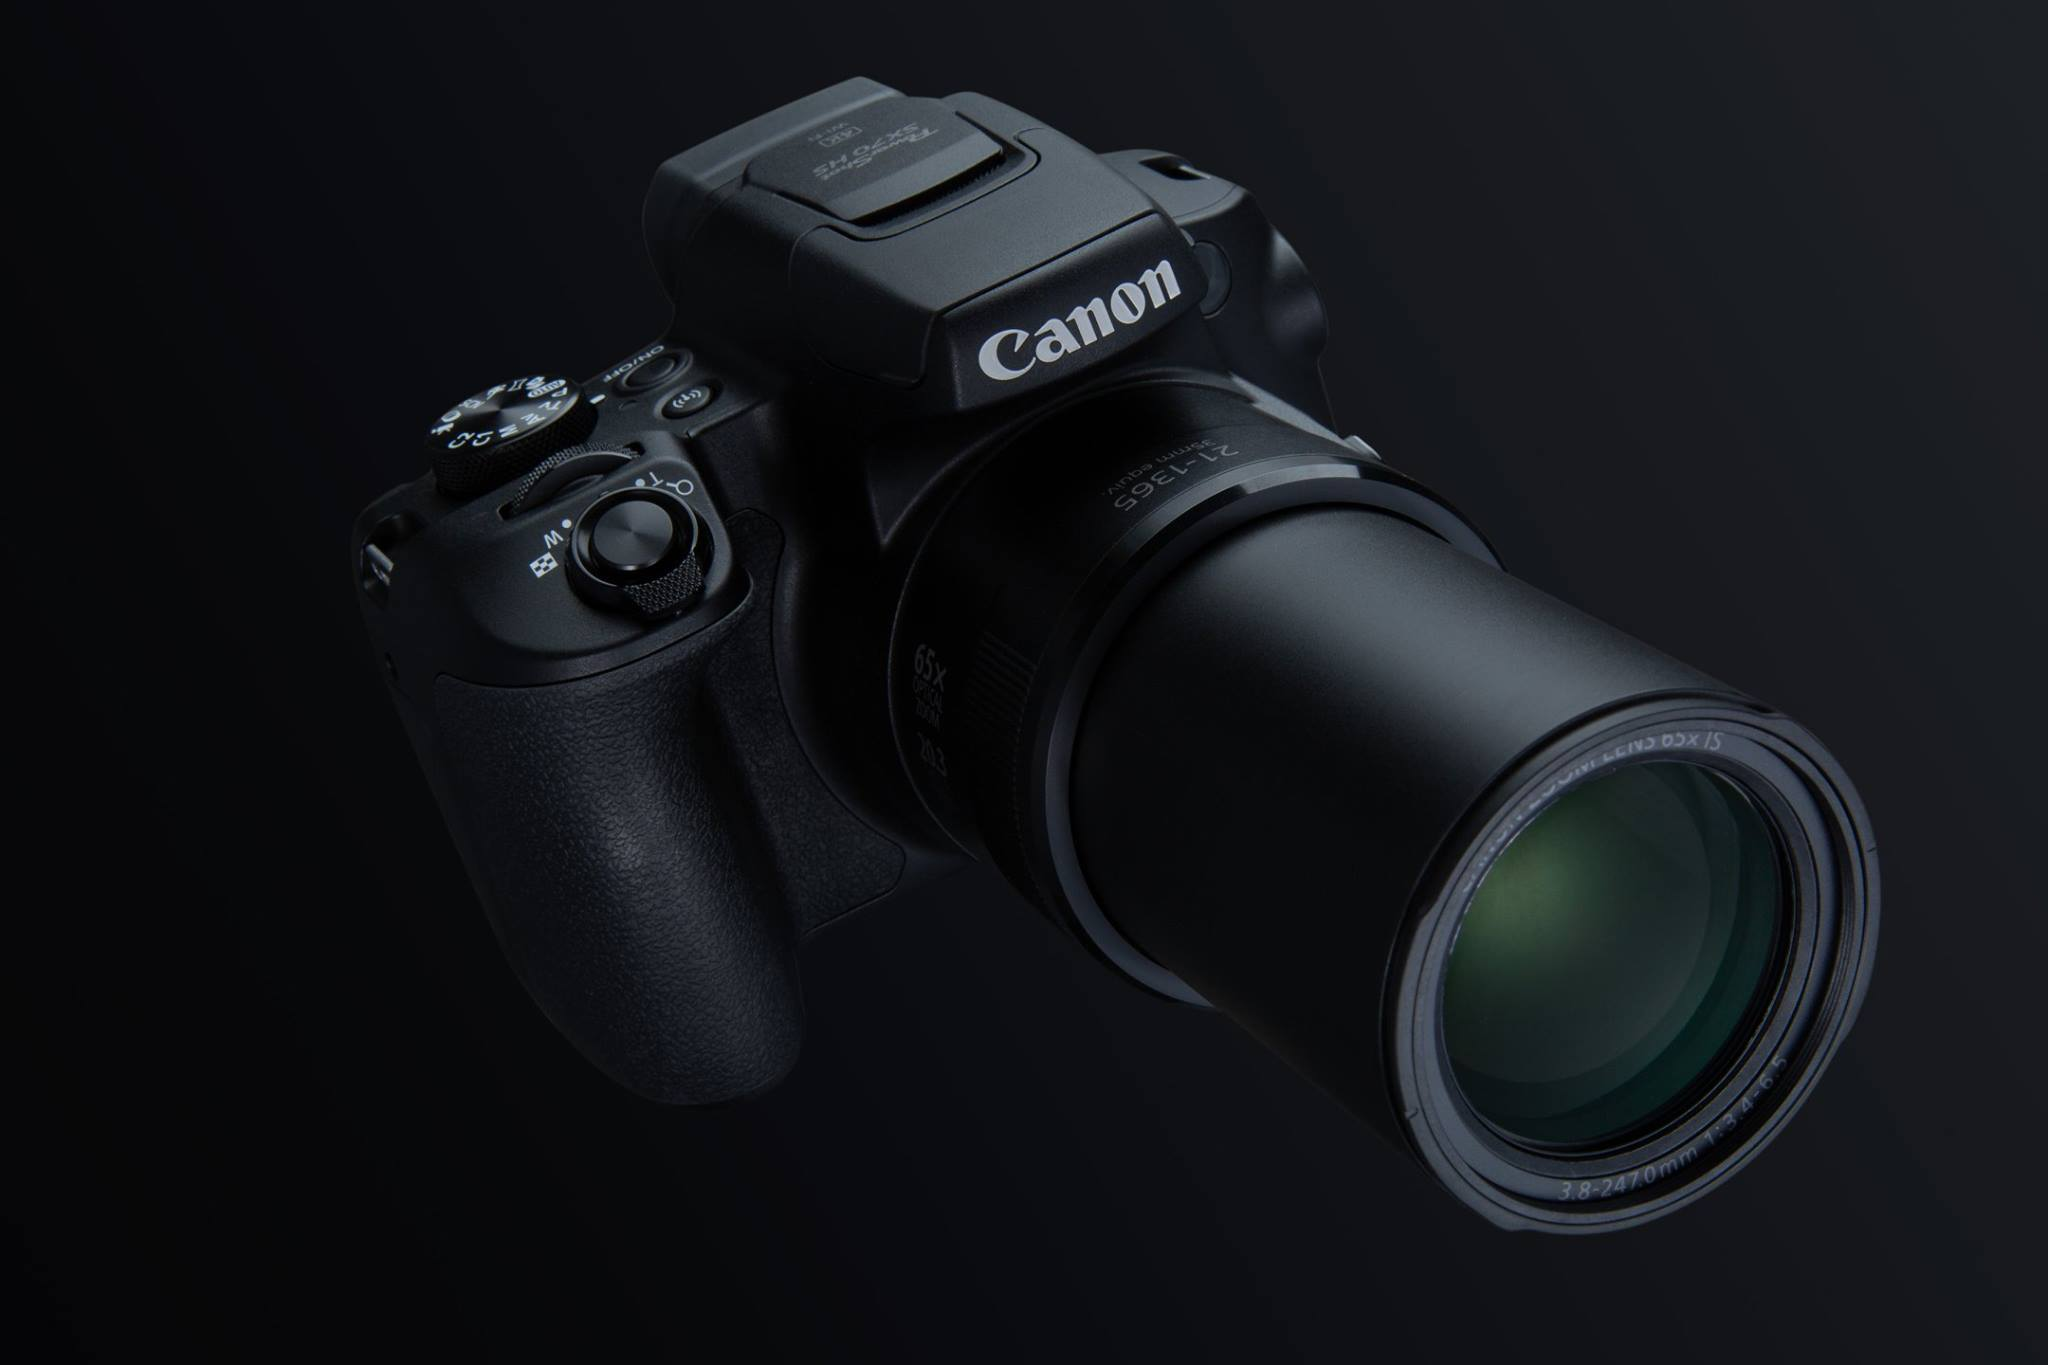 Canon Launches New PowerShot SX70 HS Digital Compact Camera